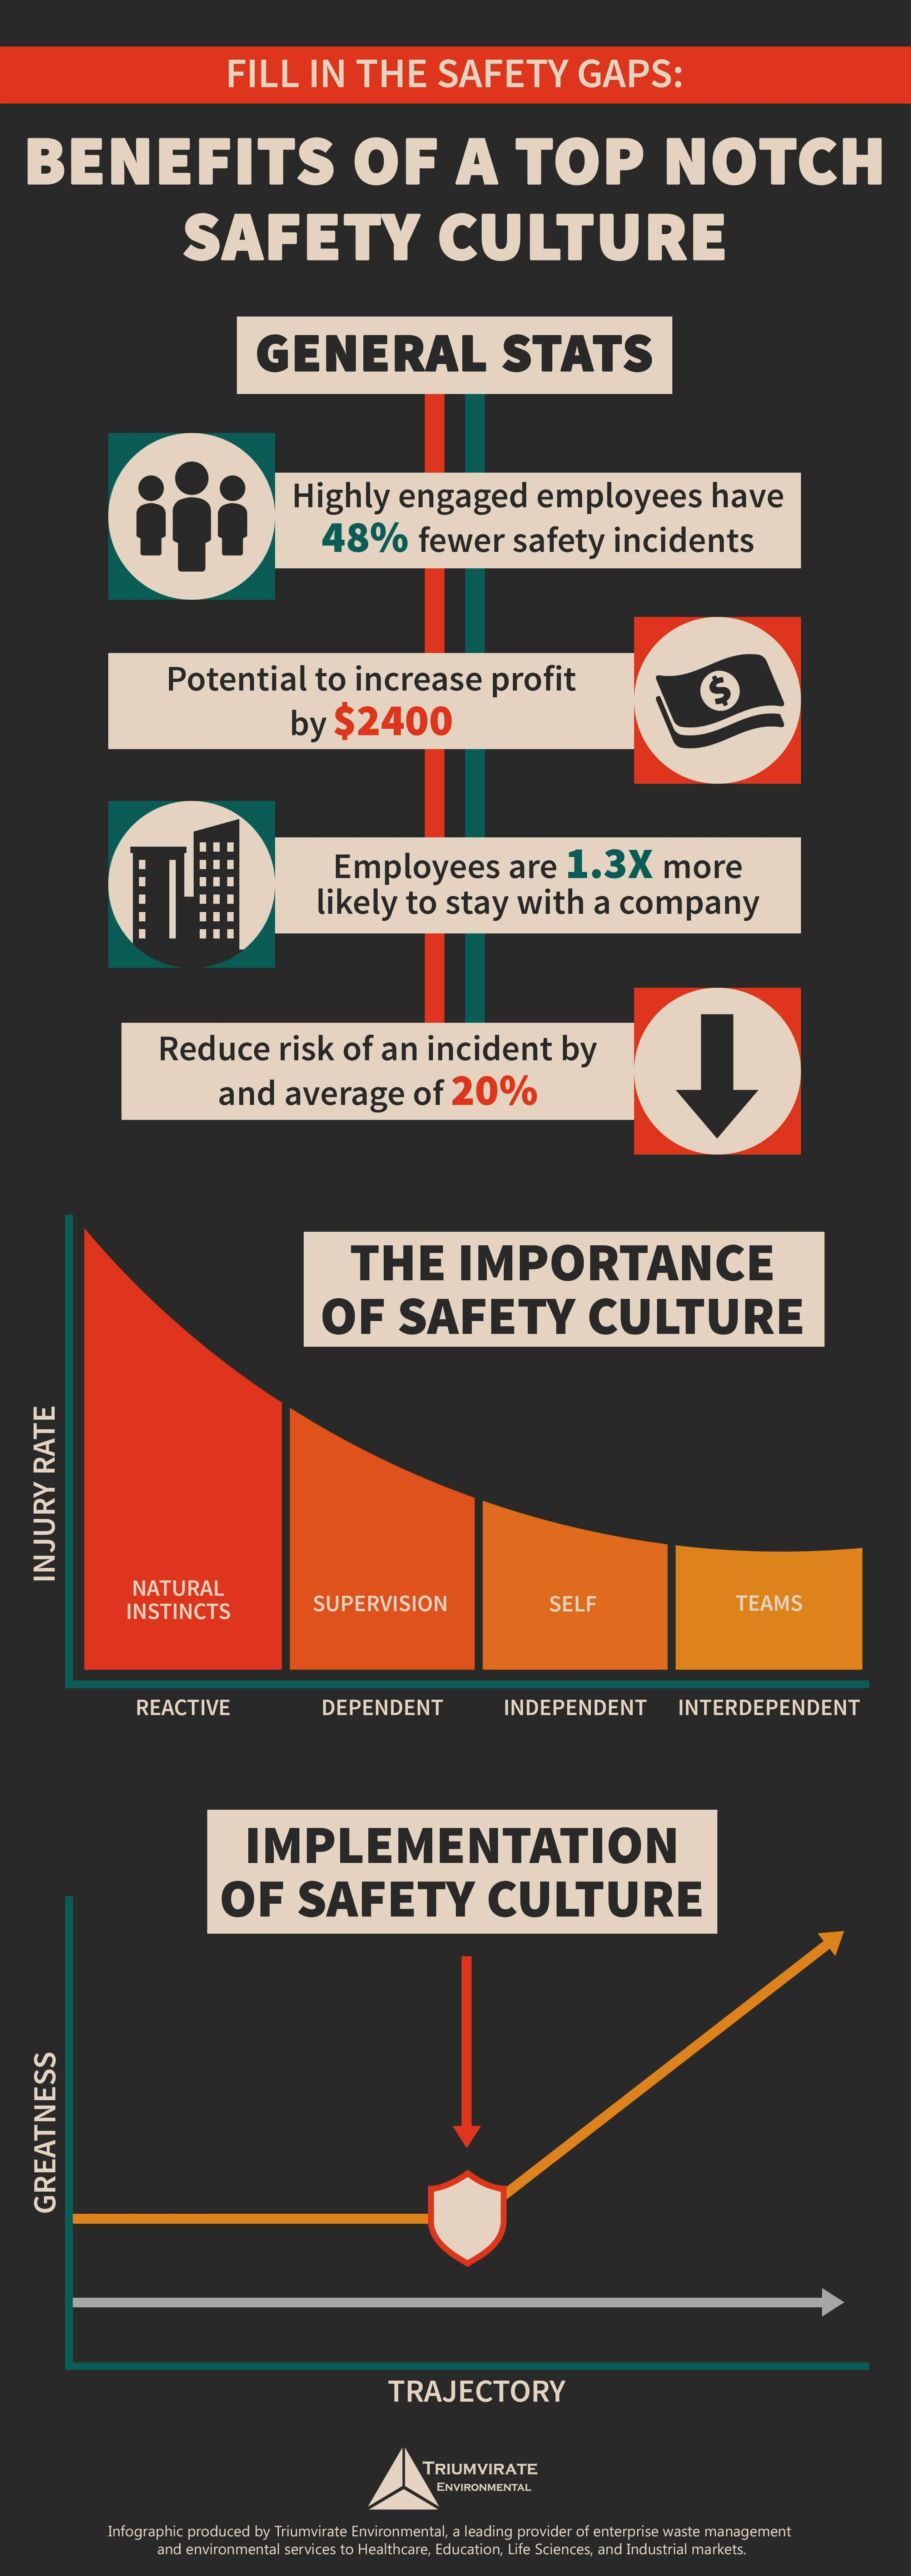 Benefits of top notch safety culture infographic